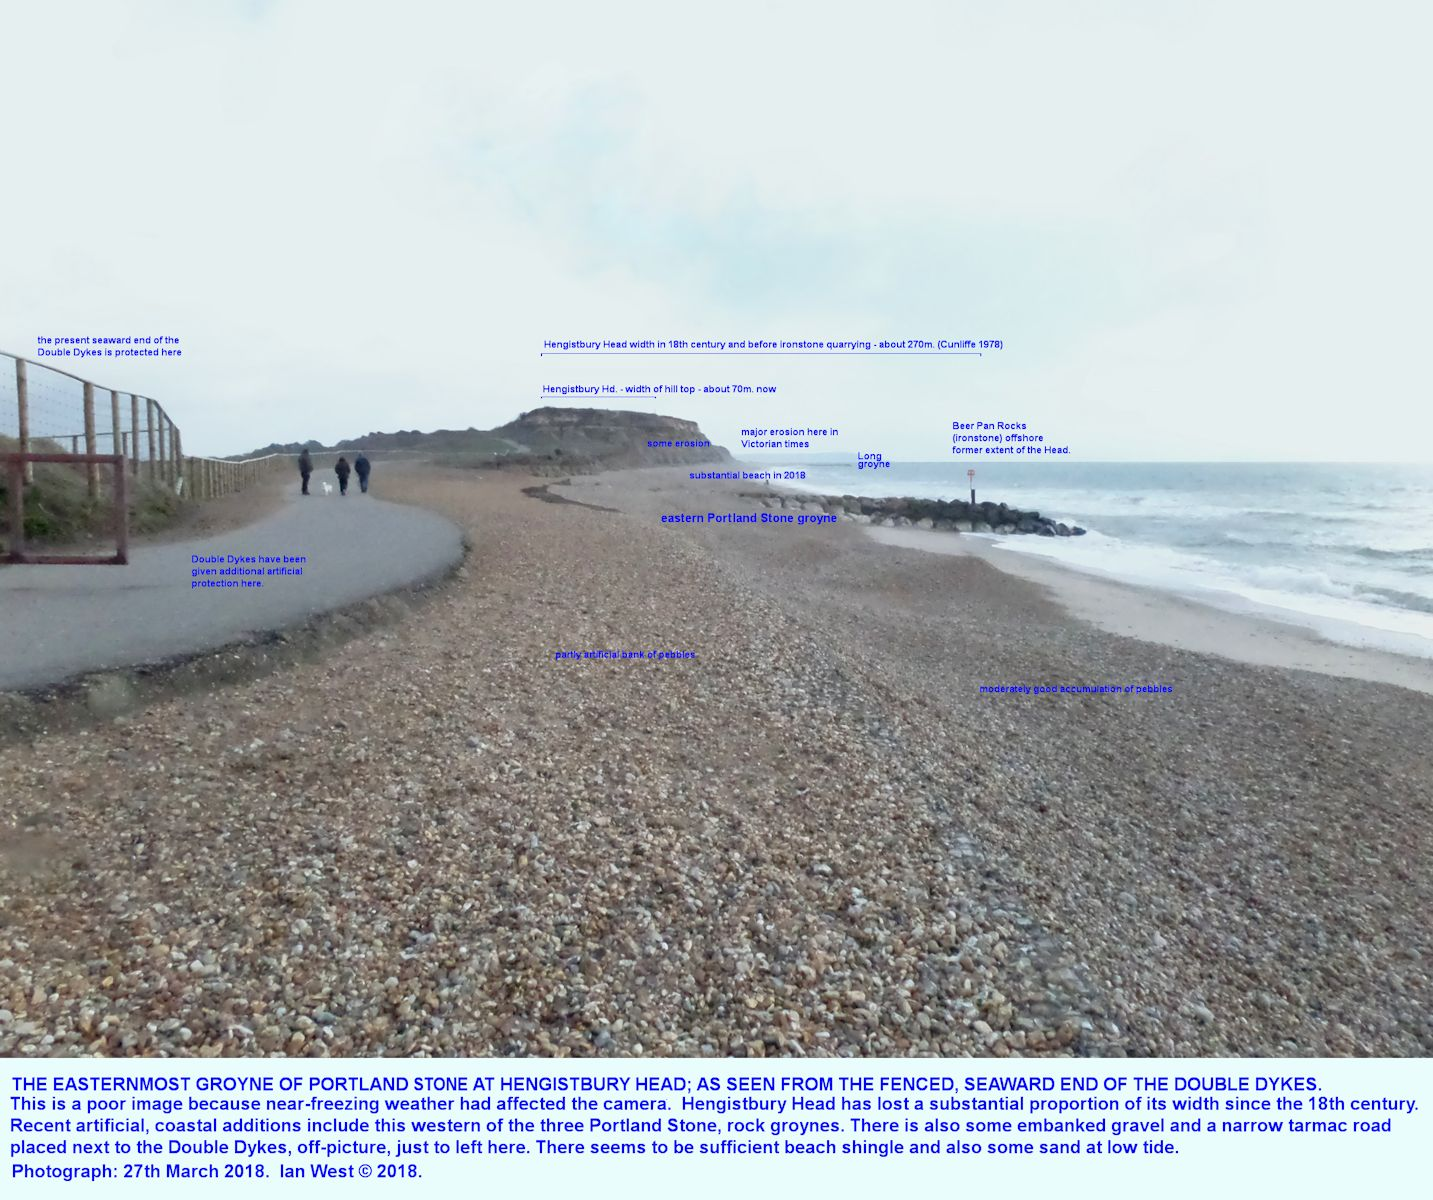 Hengistbury Head, in the distance, with some indication of former erosion, and in particular the easternmost of three groynes of Portland Stone blocks, view is approximately eastward